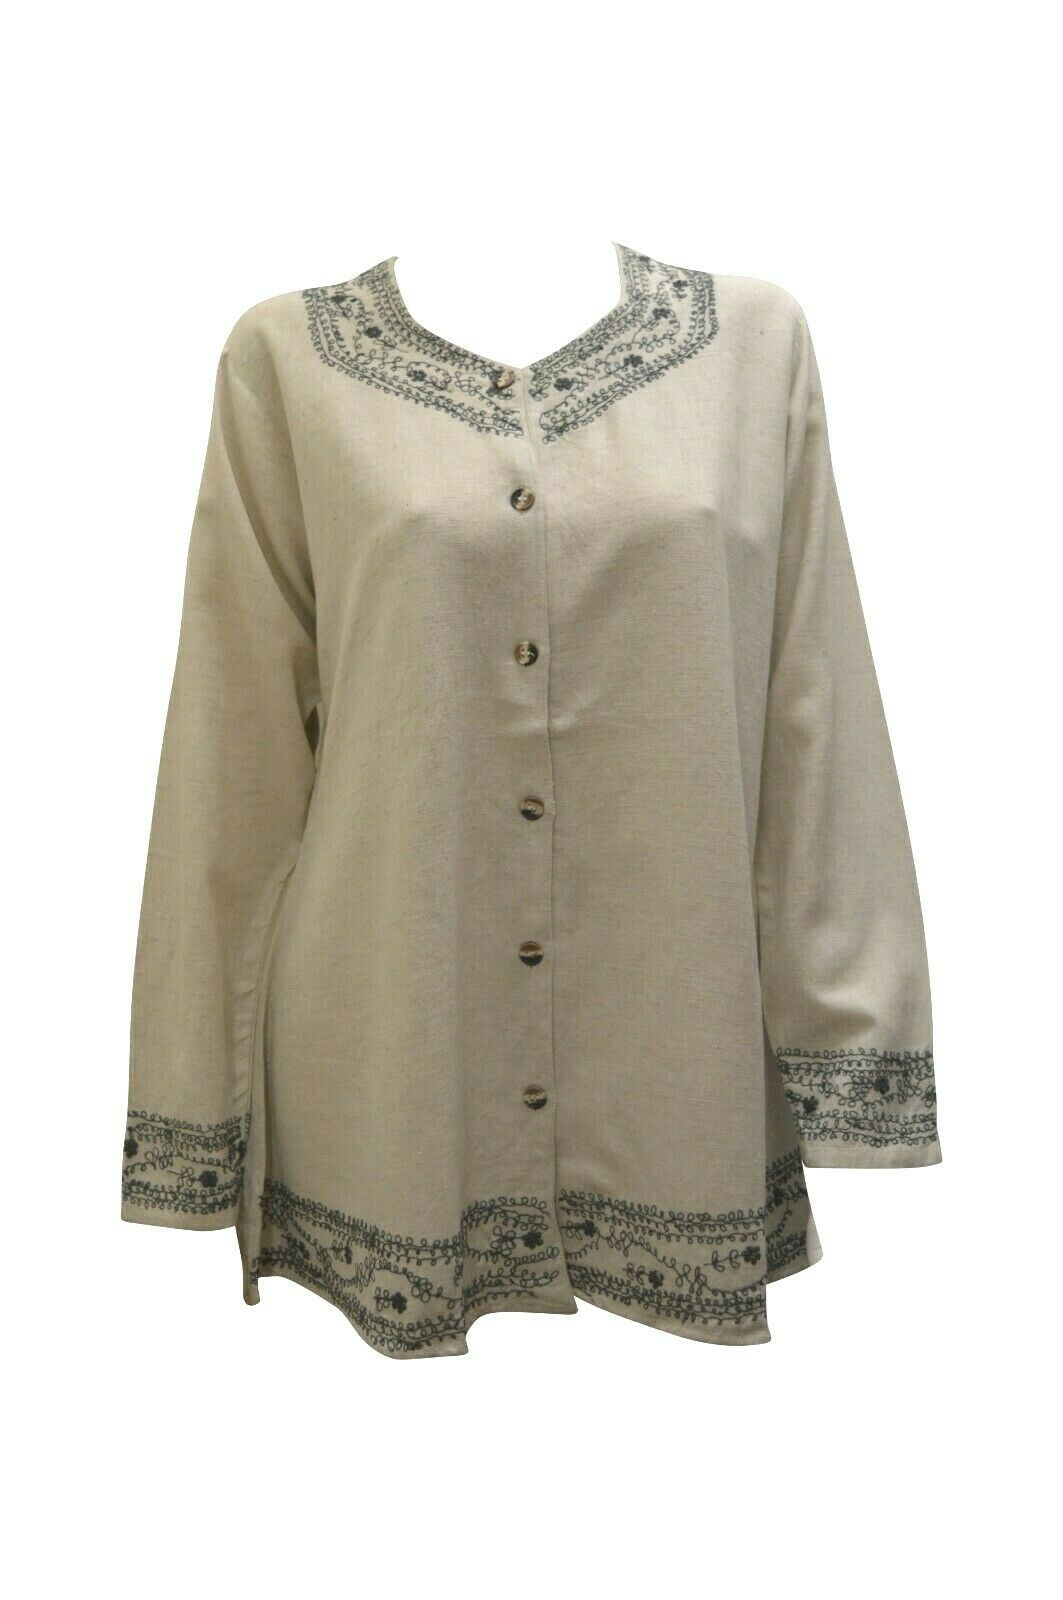 Primary image for WOMENS TOP BOHO HIPPIE LINEN STYLE COTTON BUTTON UP LONG SLEEVE BLOUSE SHIRT 12